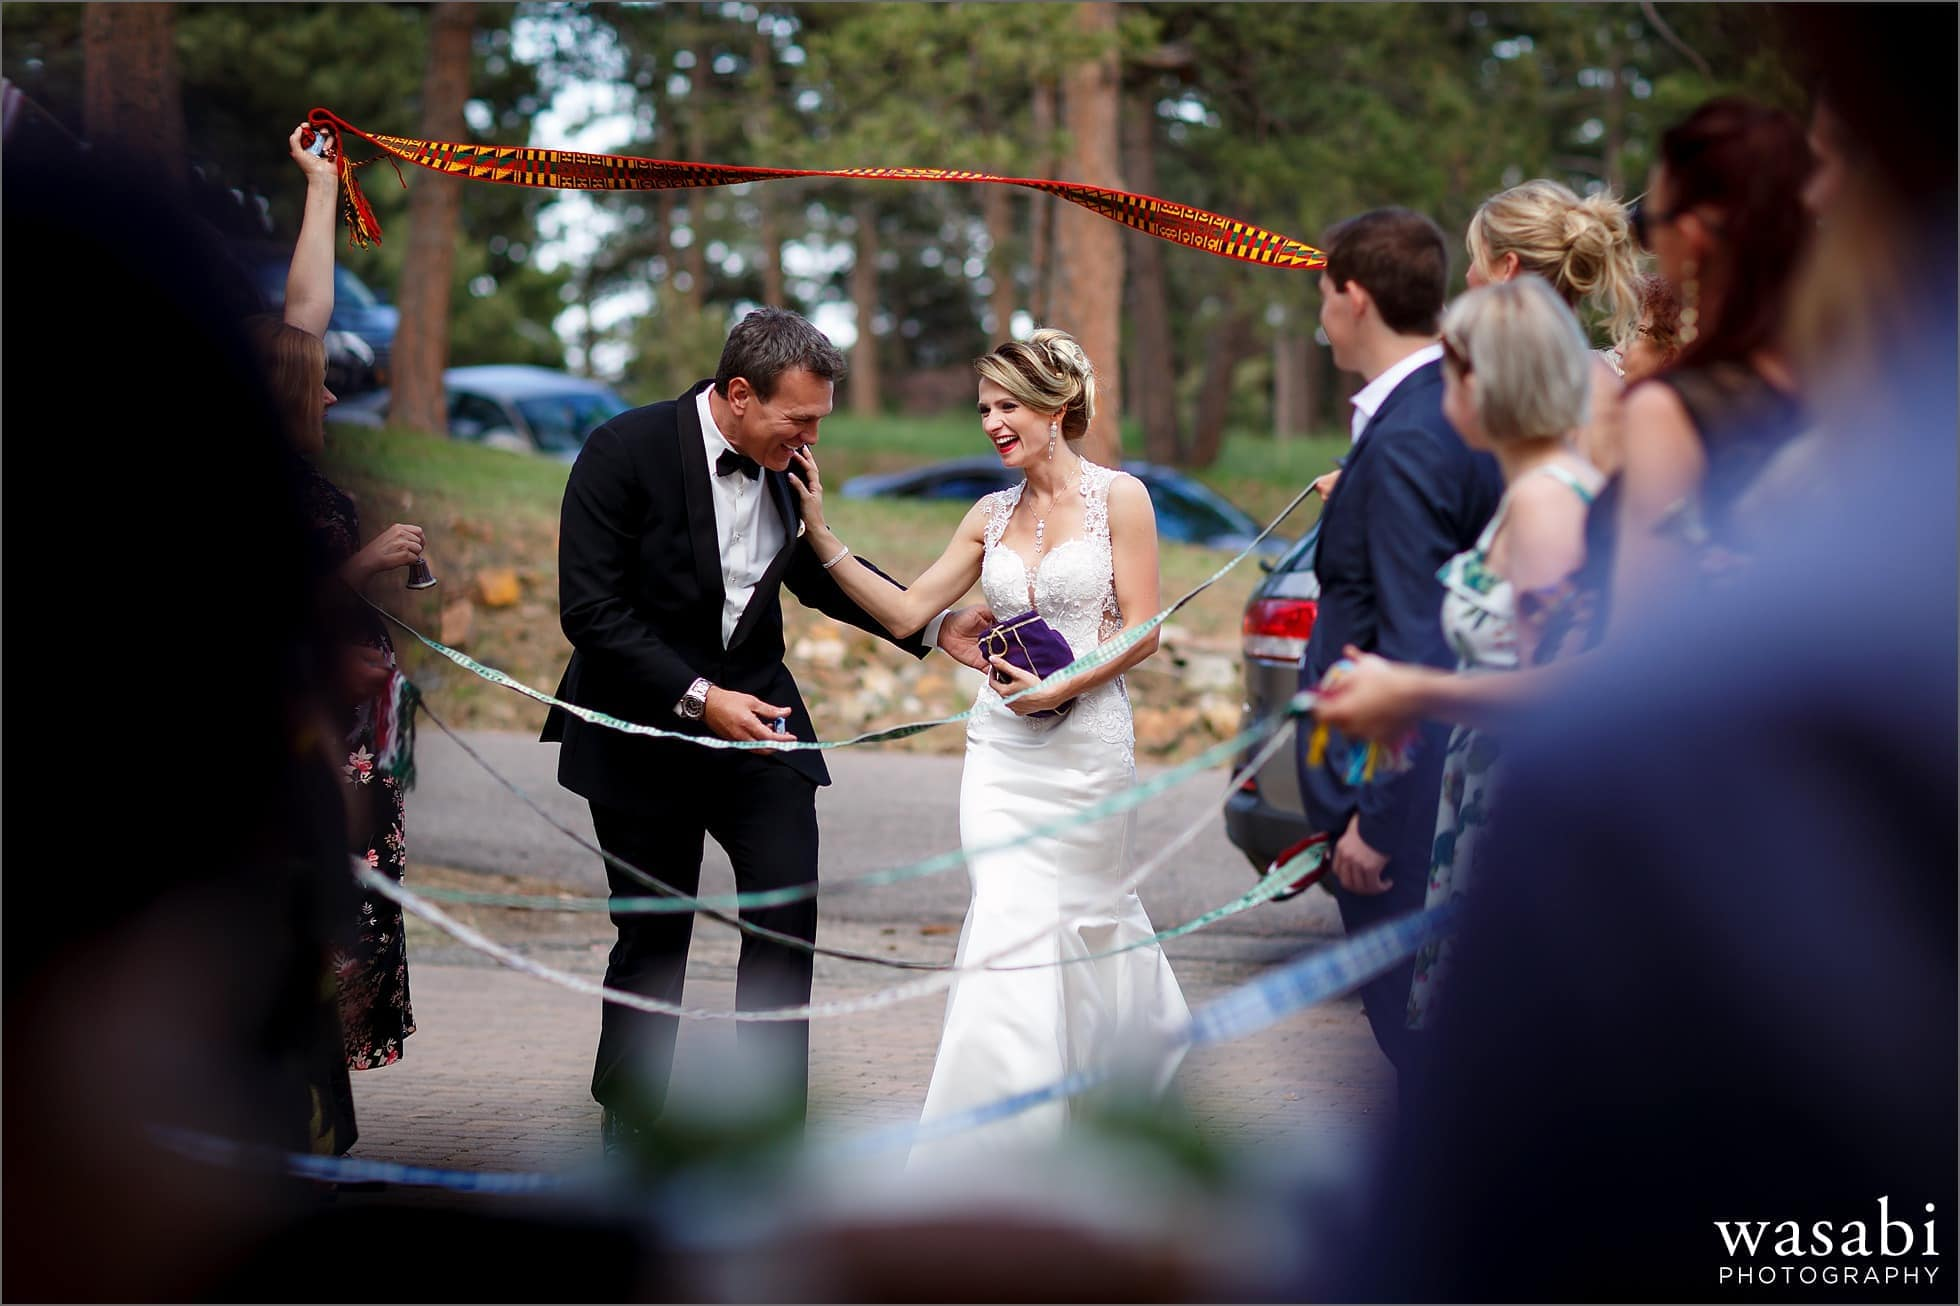 bride and groom arrive to their home wedding reception to a Lithuanian wedding tradition with their friends and family holding woven sashes